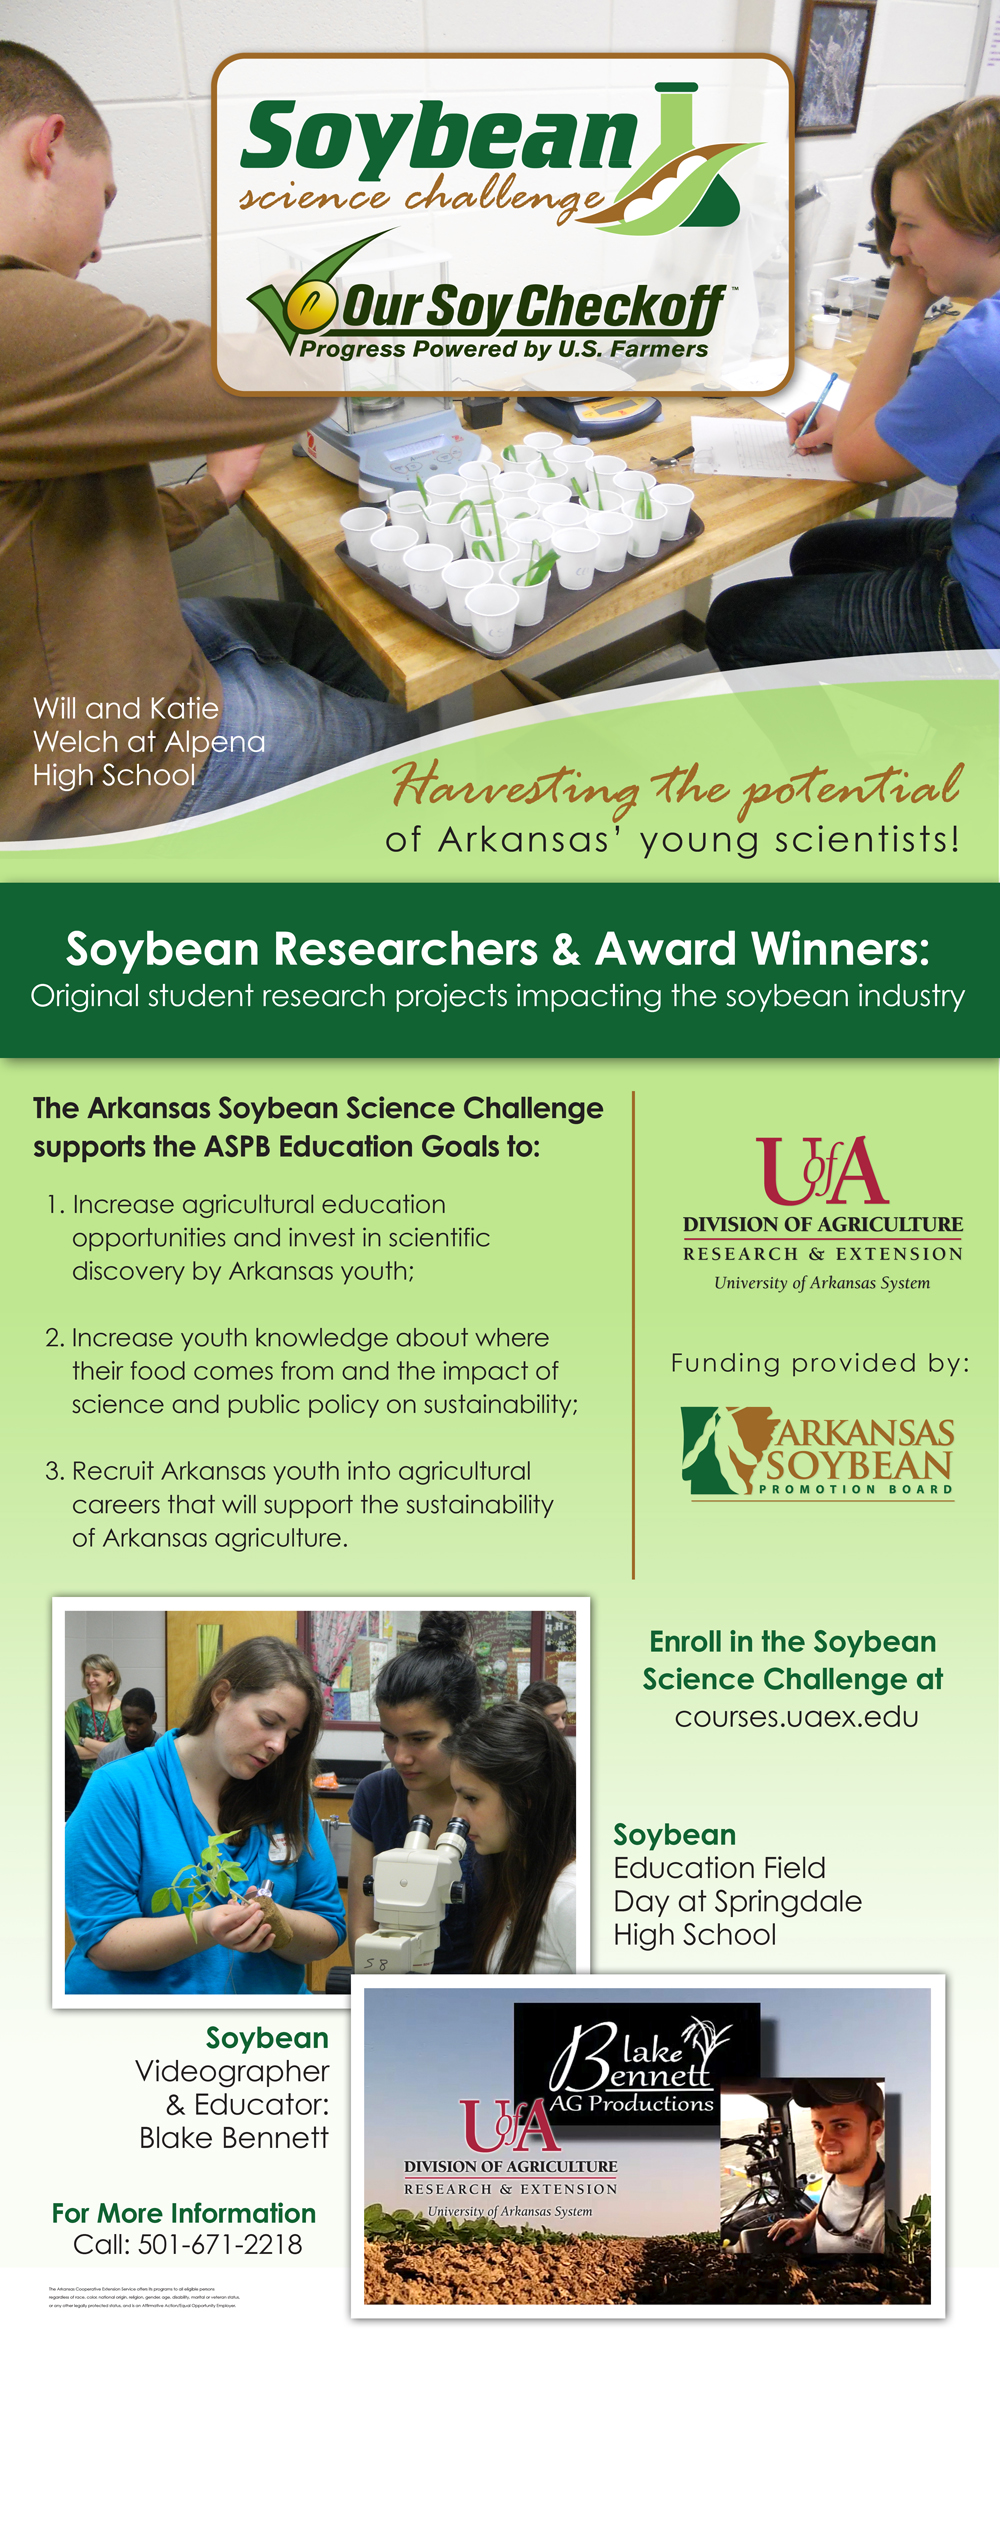 Soybean Science Challenge